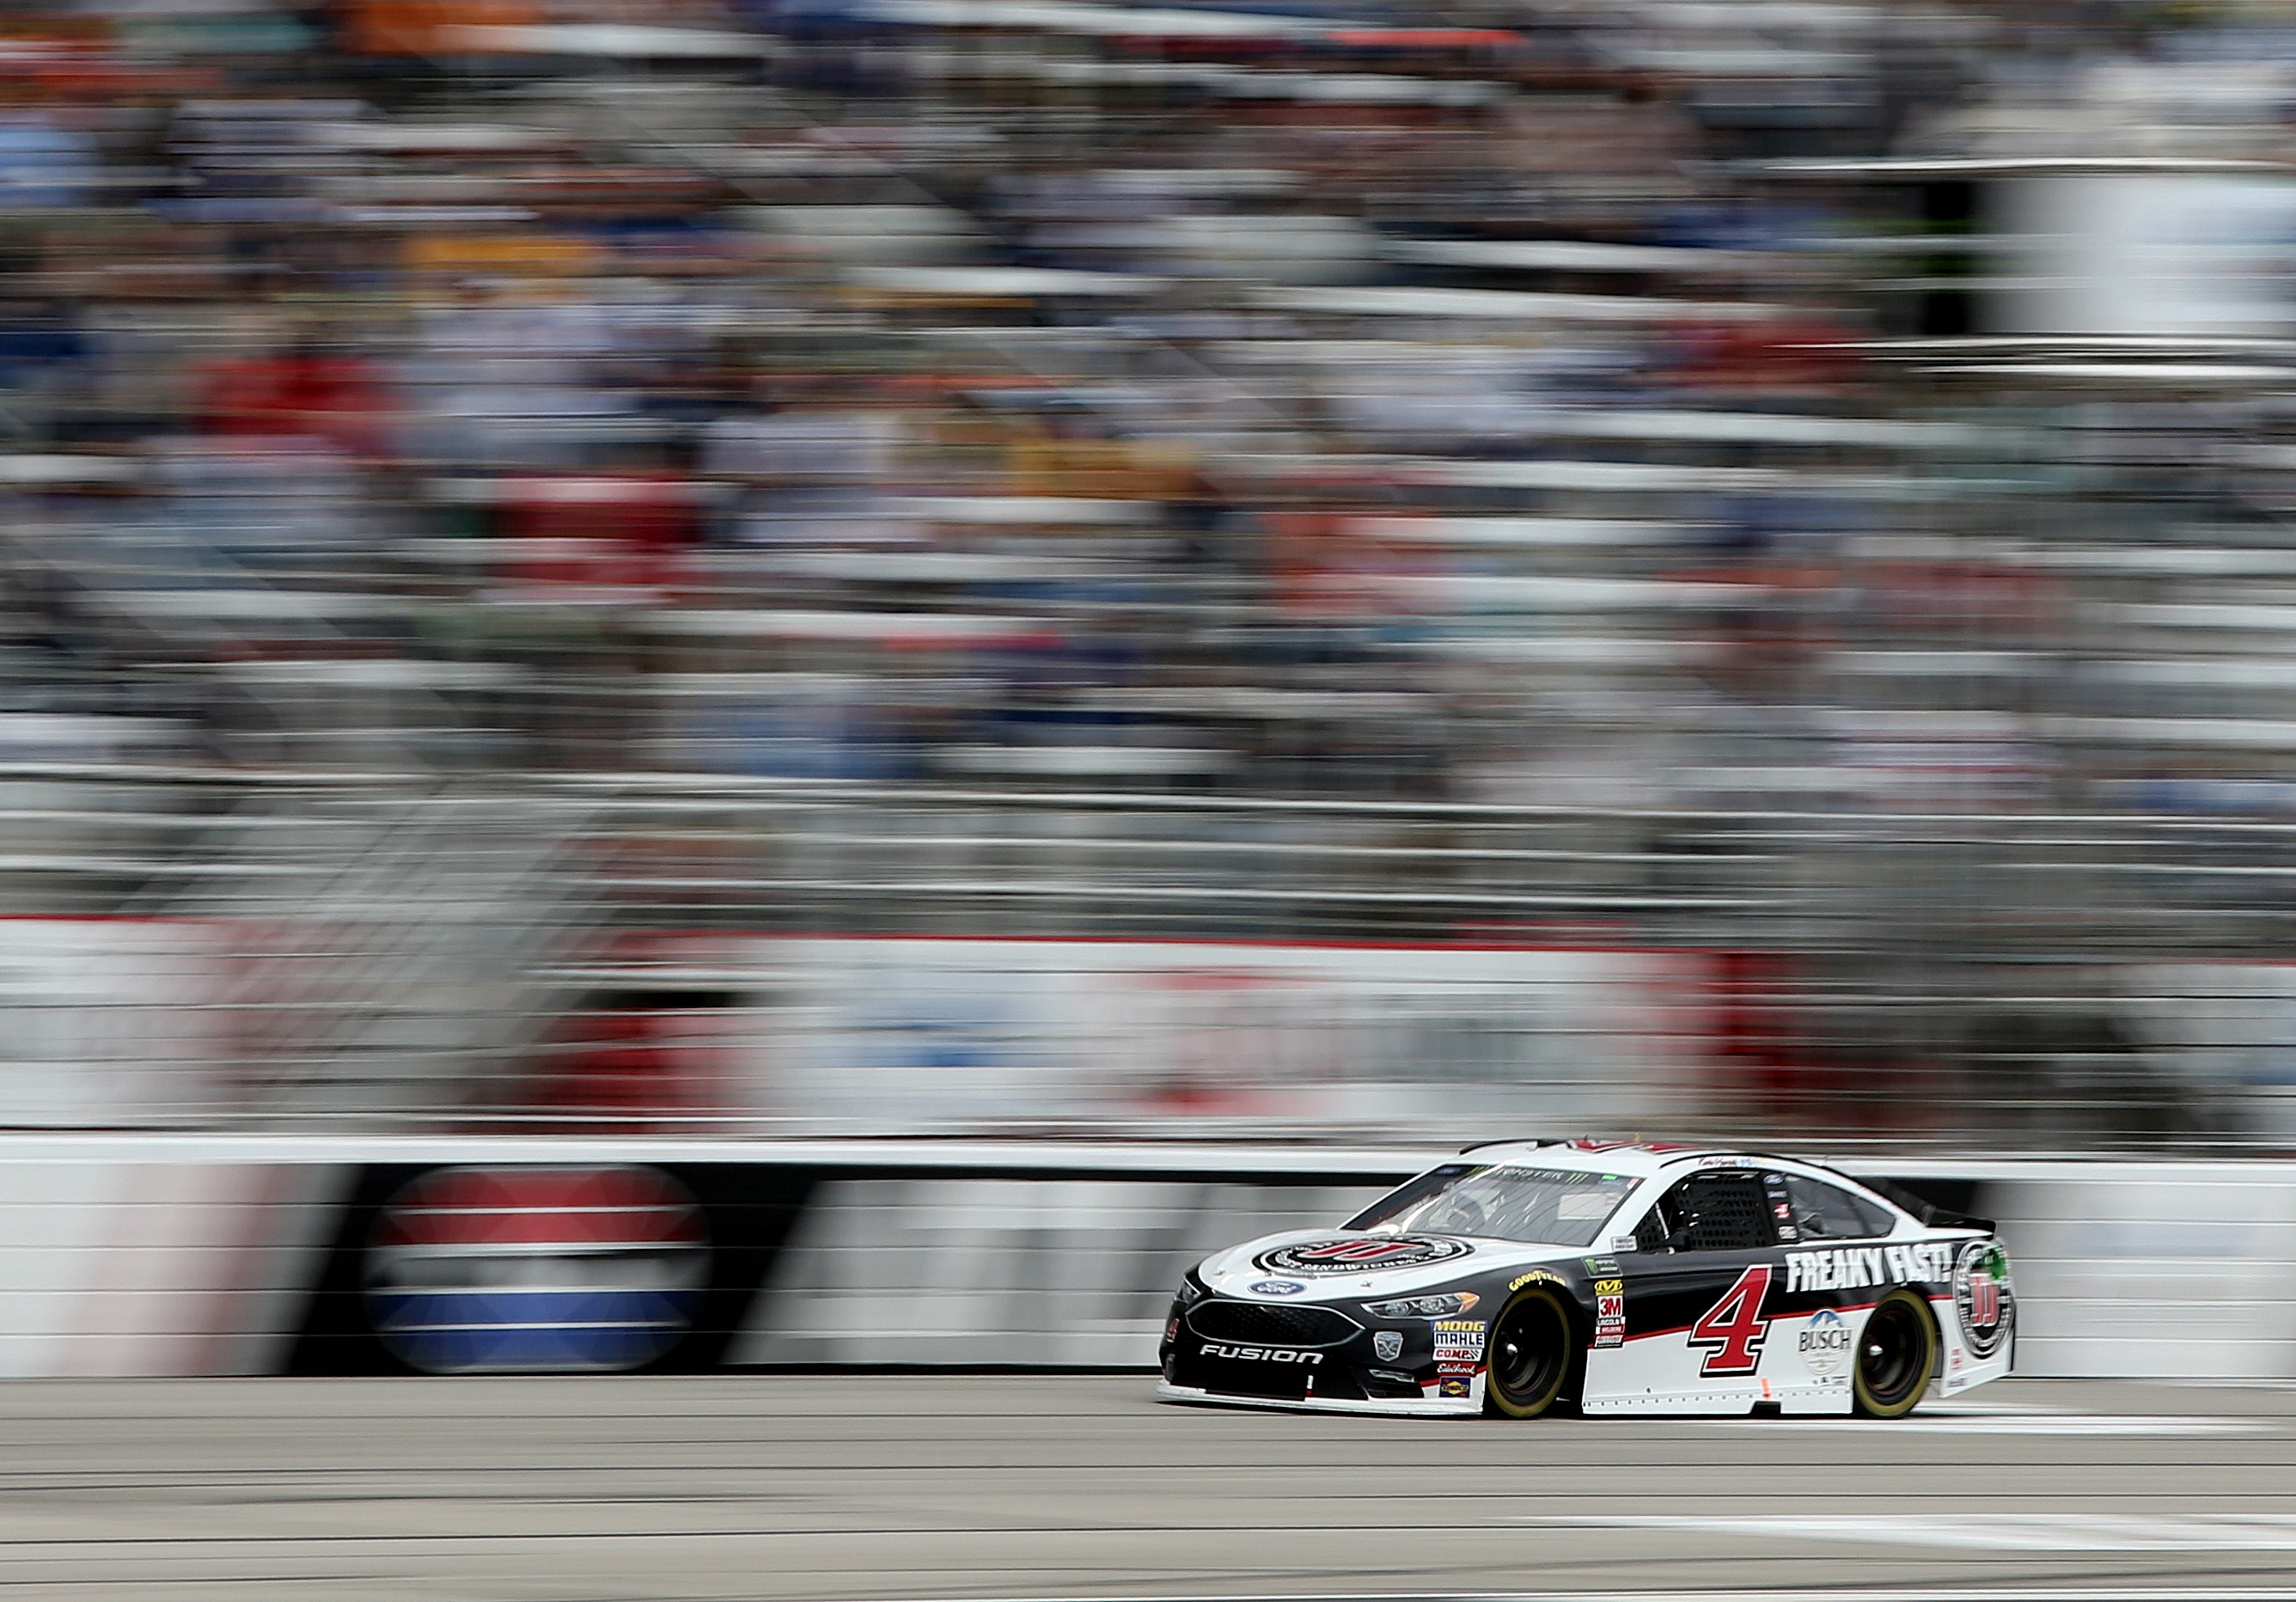 Kevin Harvick at Atlanta Motor Speedway during the 2018 Monster Energy NASCAR Cup Series race